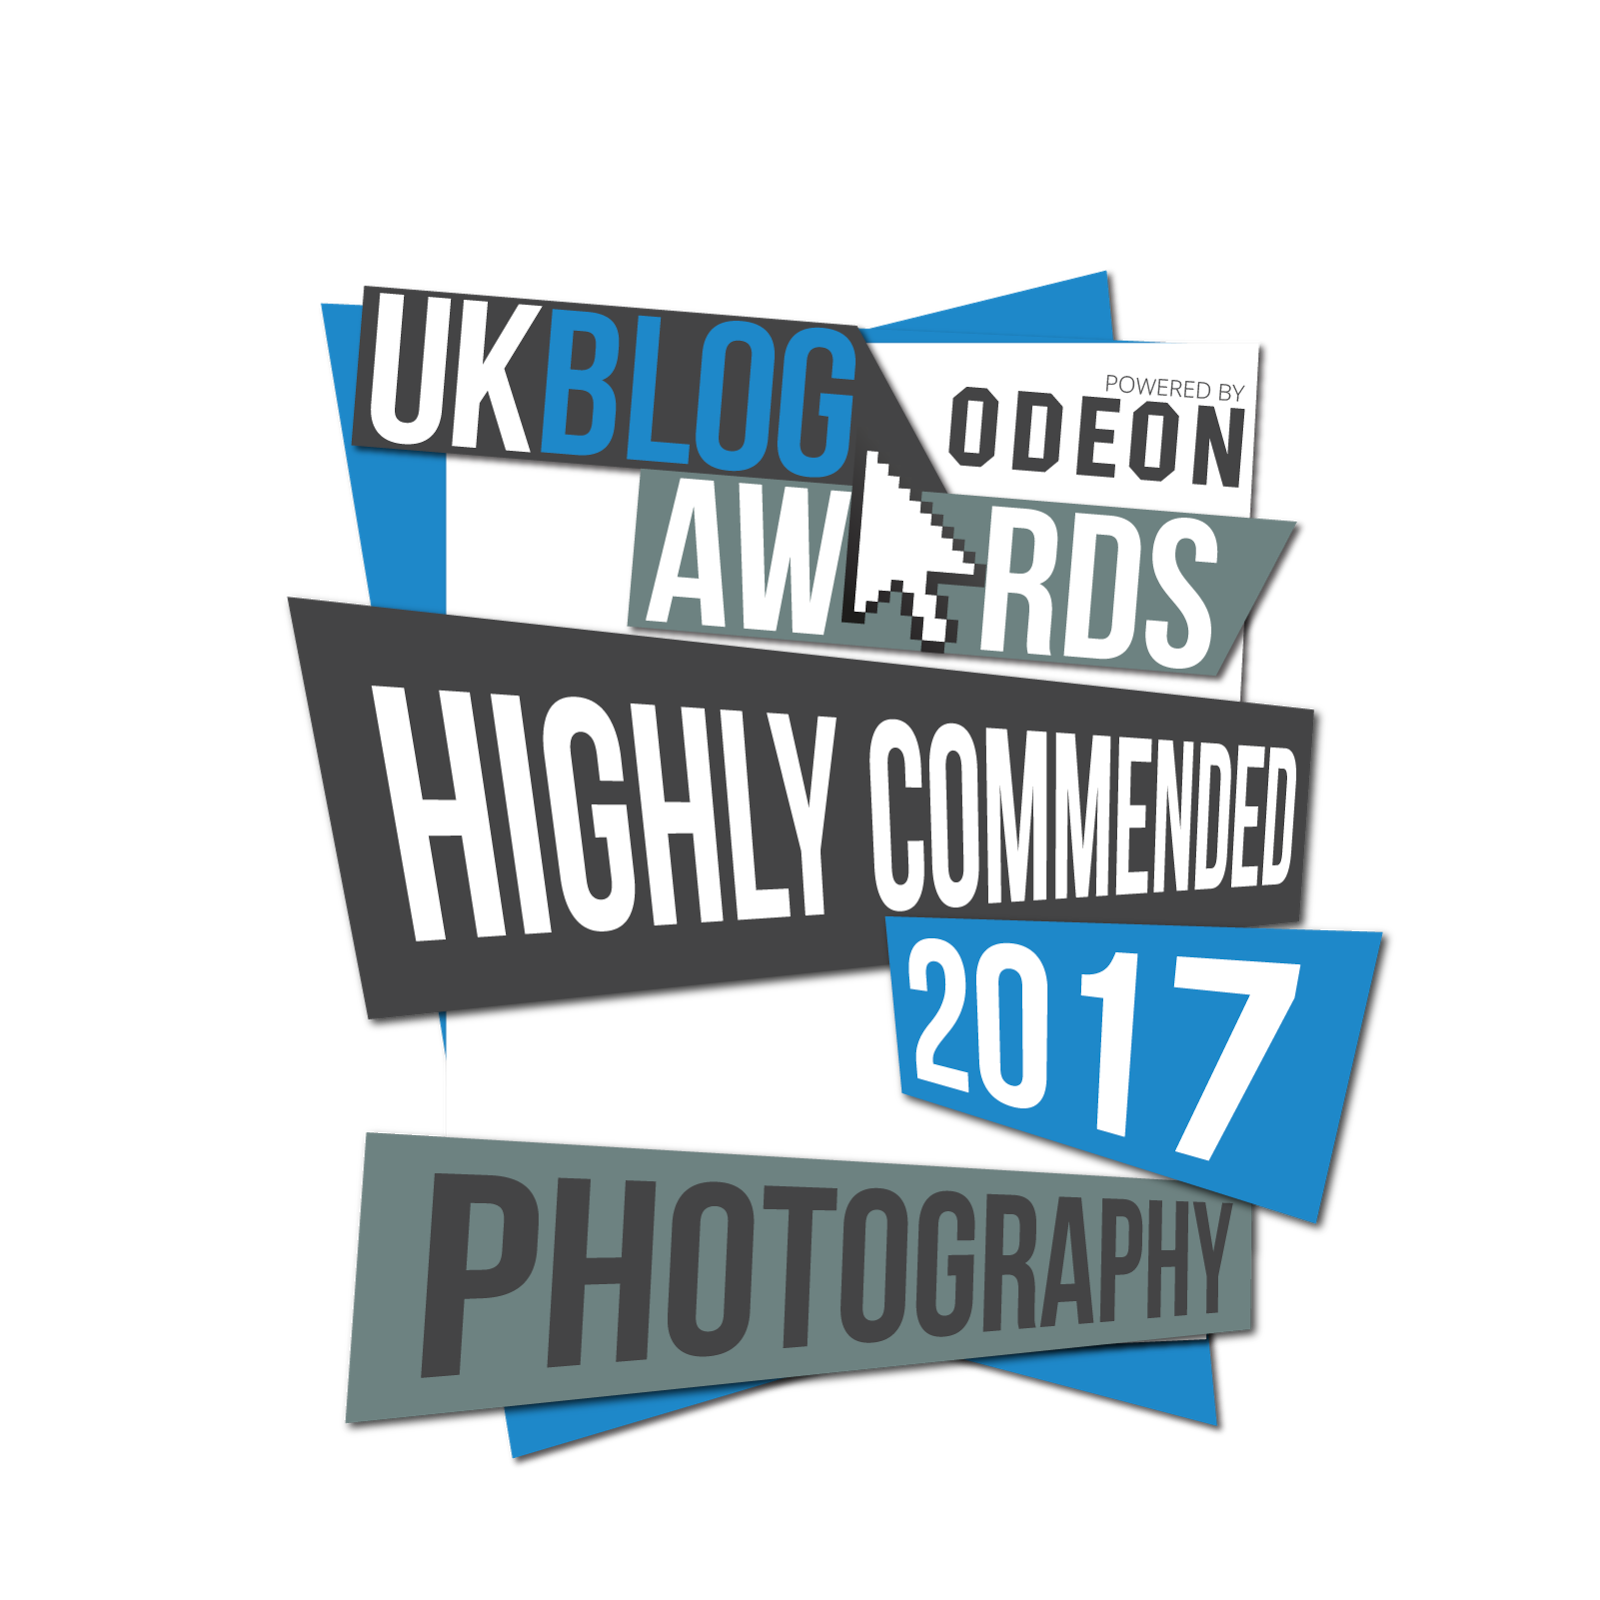 Highly commended in the UK Blog Awards 2017